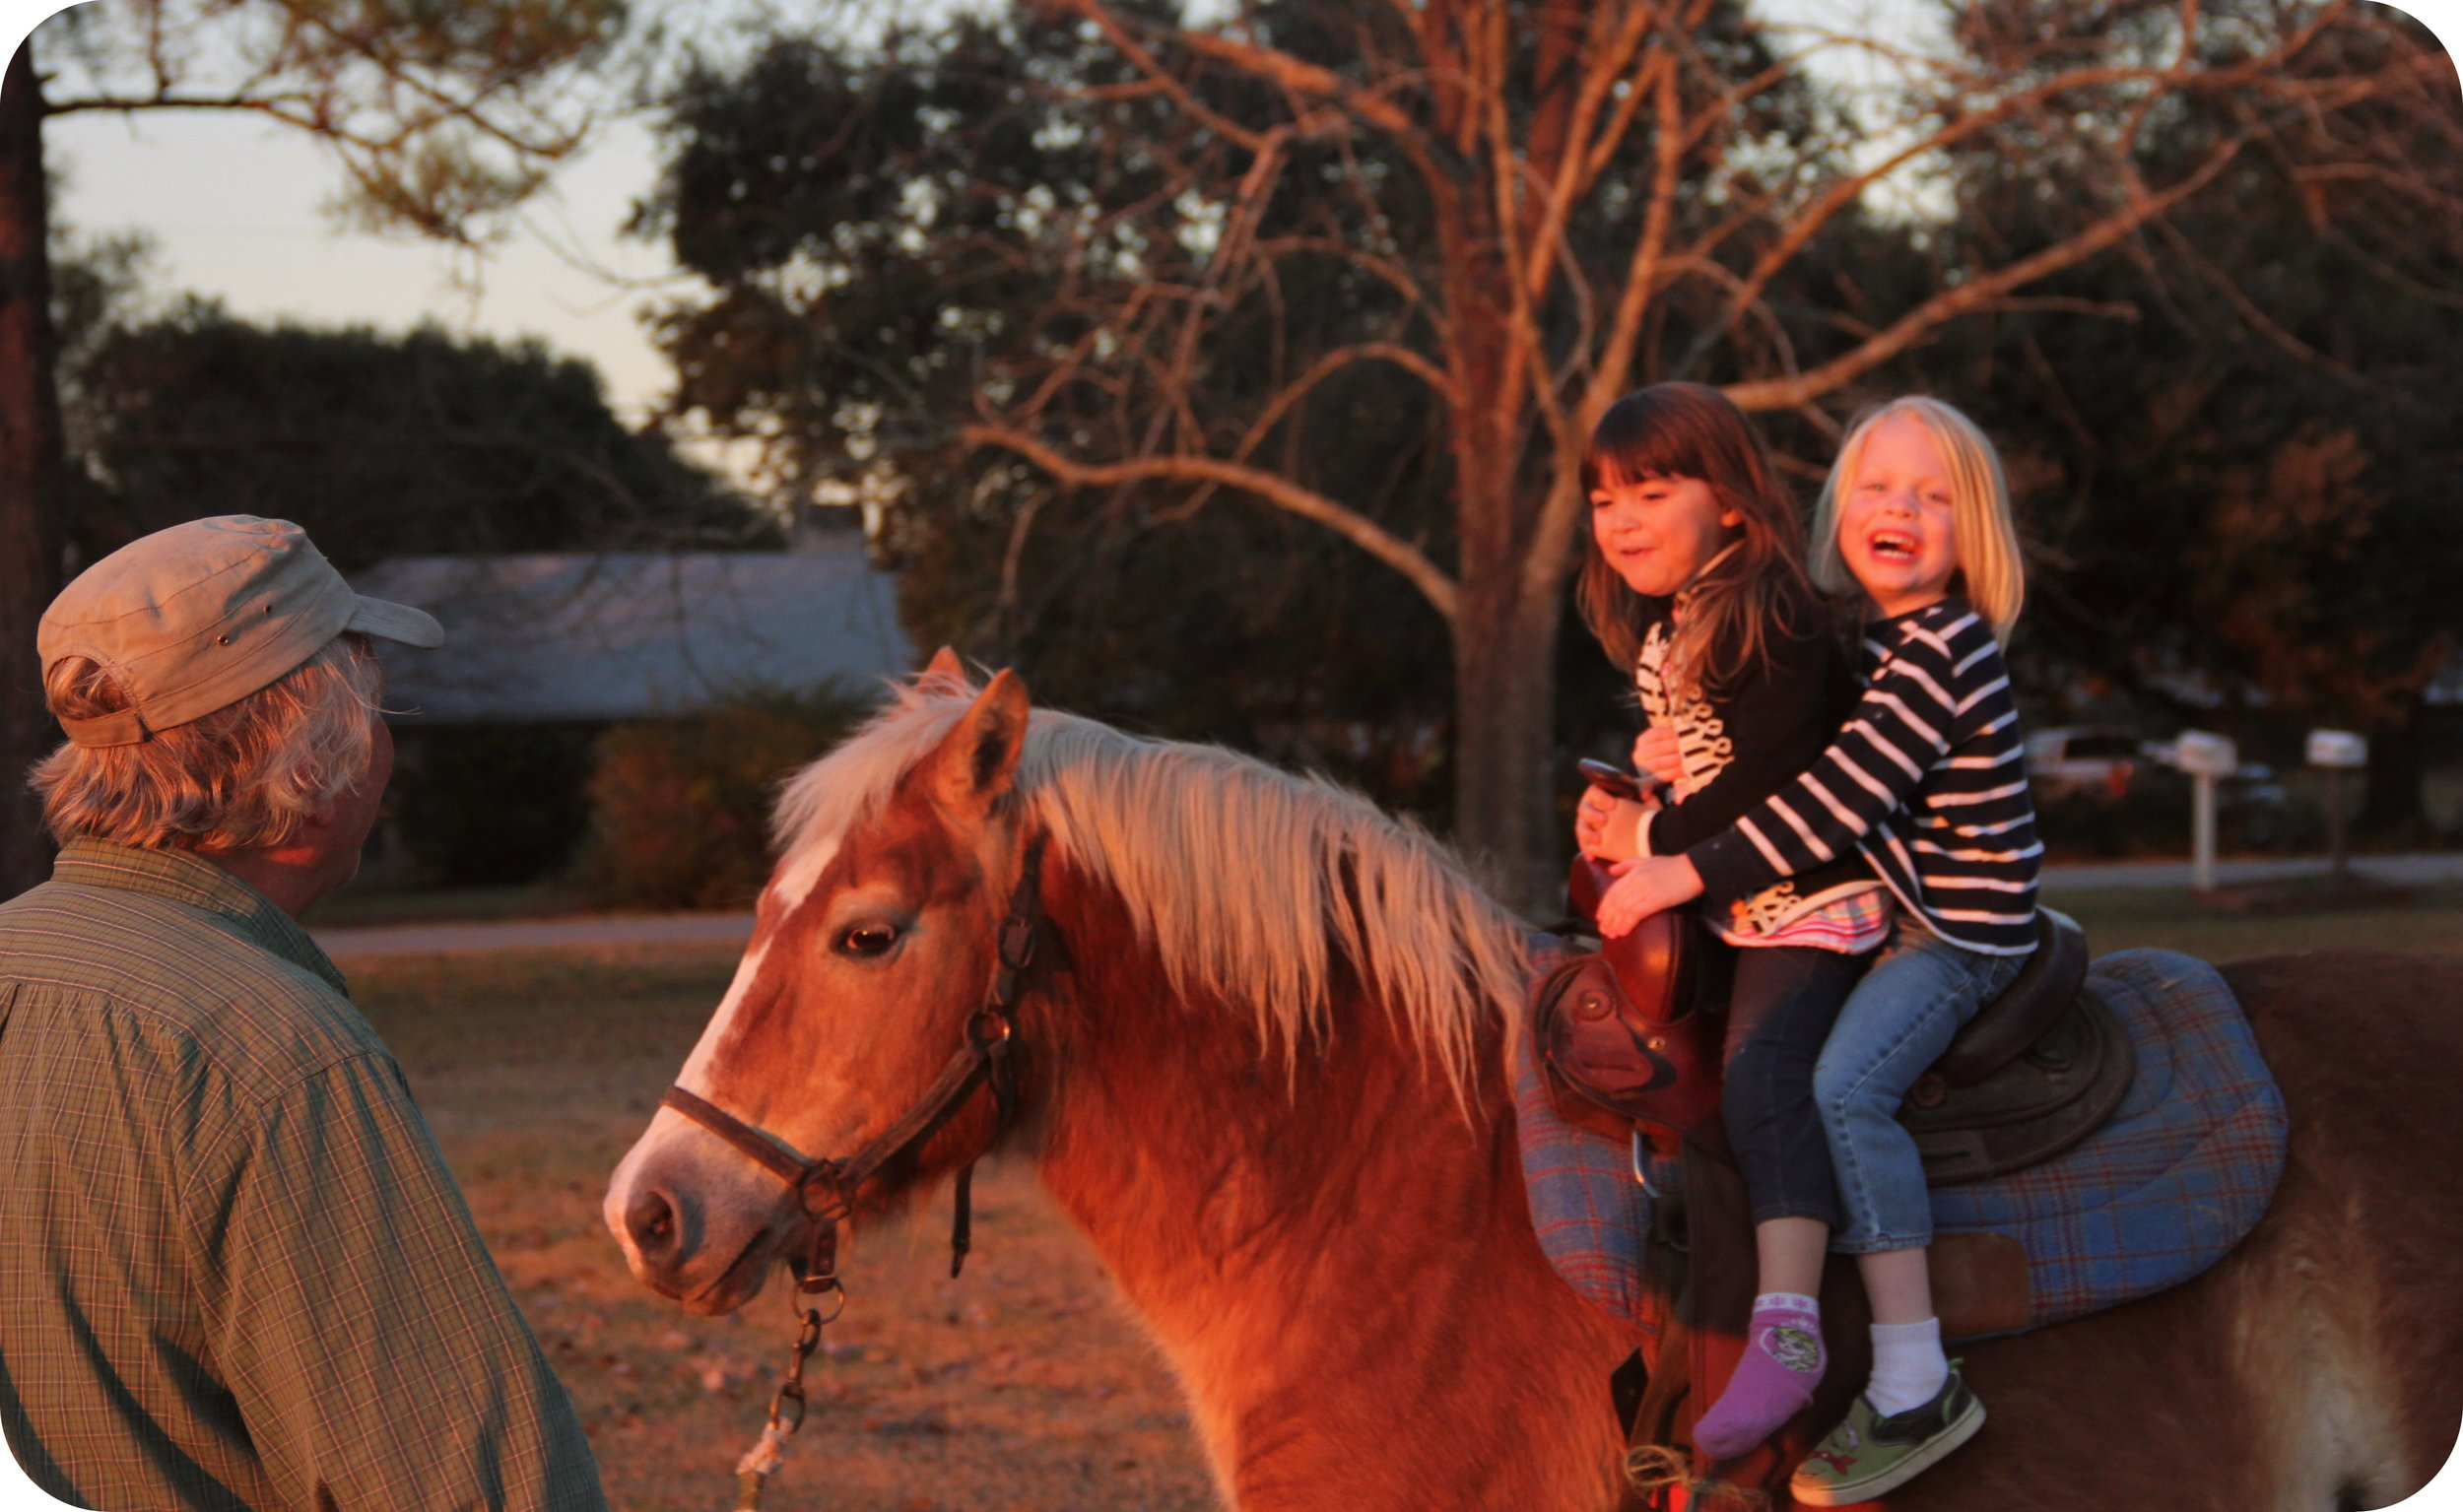 kai and lucca on horse 3.JPG